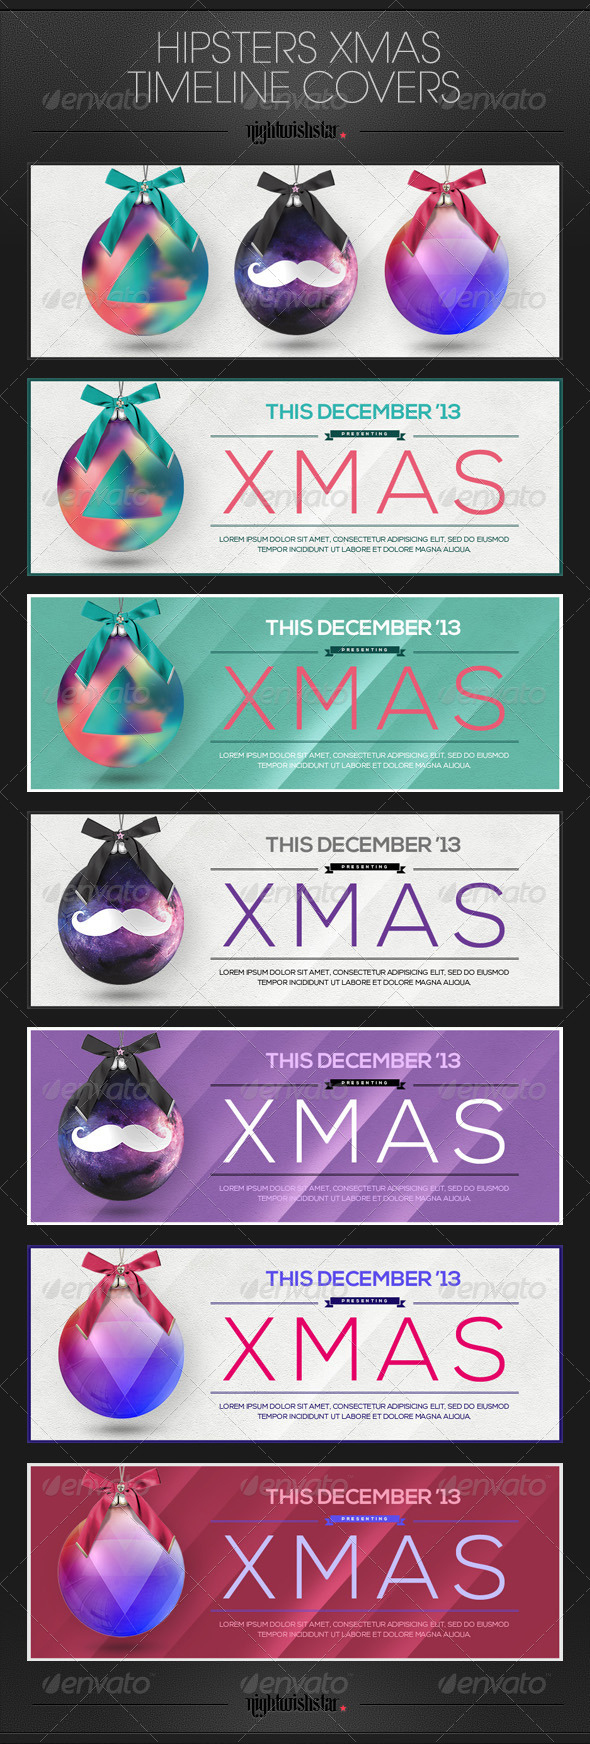 GraphicRiver Hipster Christmas Facebook Timeline Covers 6321707